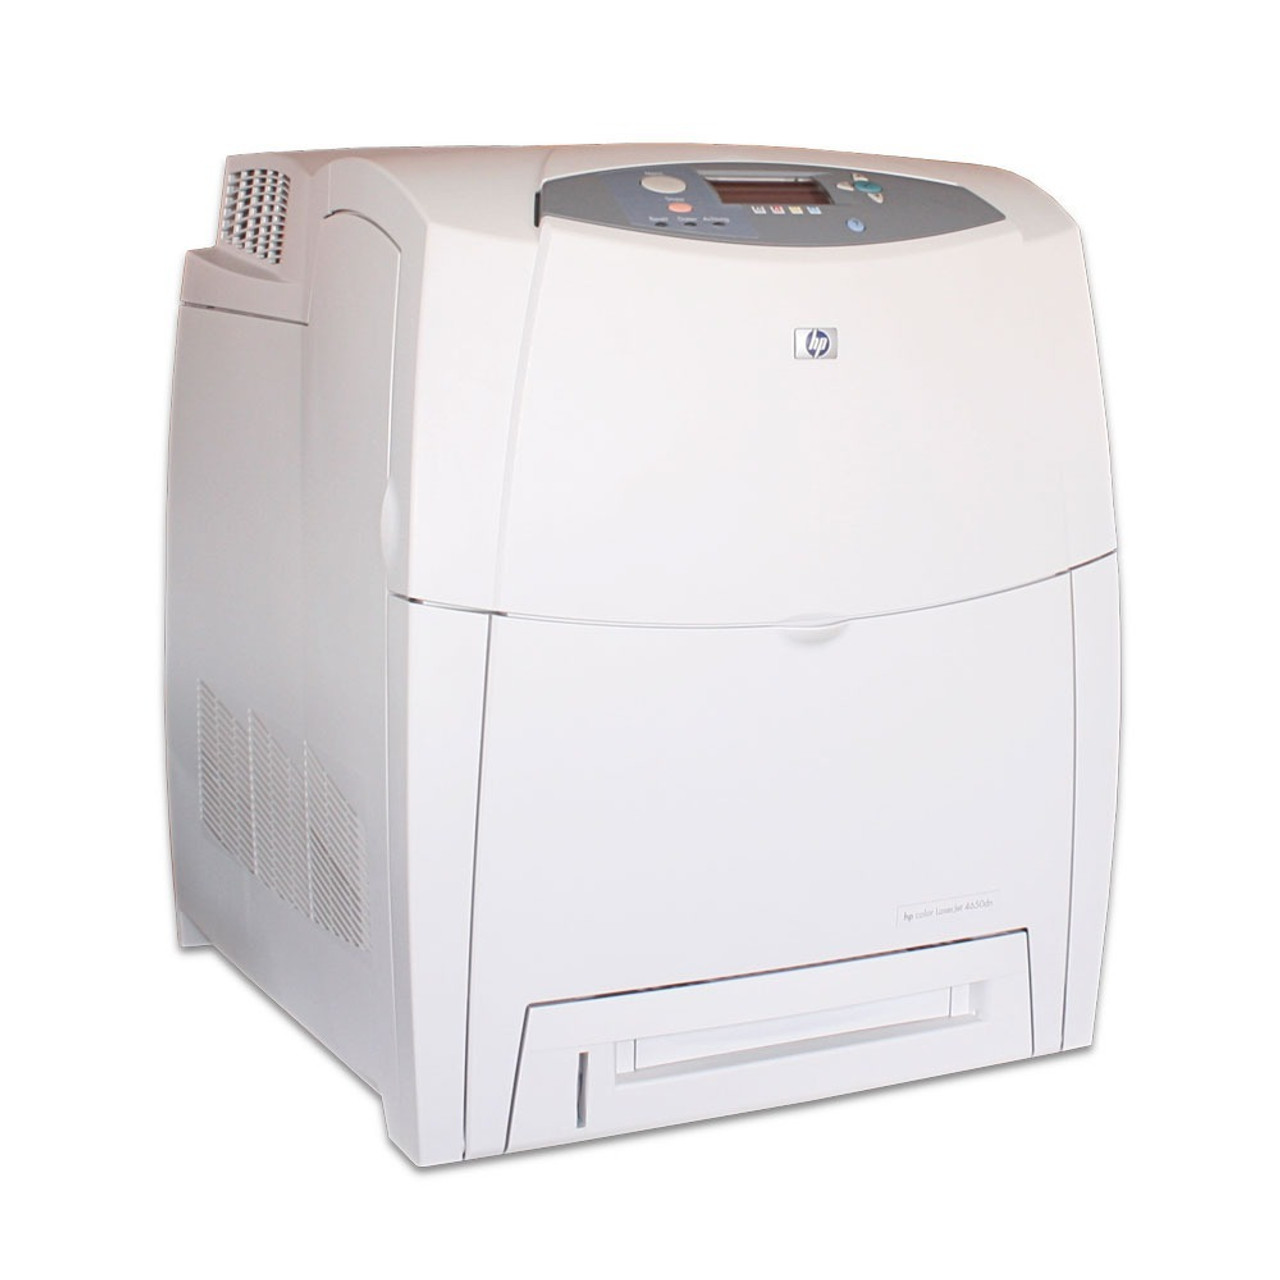 HP Color LaserJet 4650 - Q3668A - HP Laser Printer for sale with low cost shipping